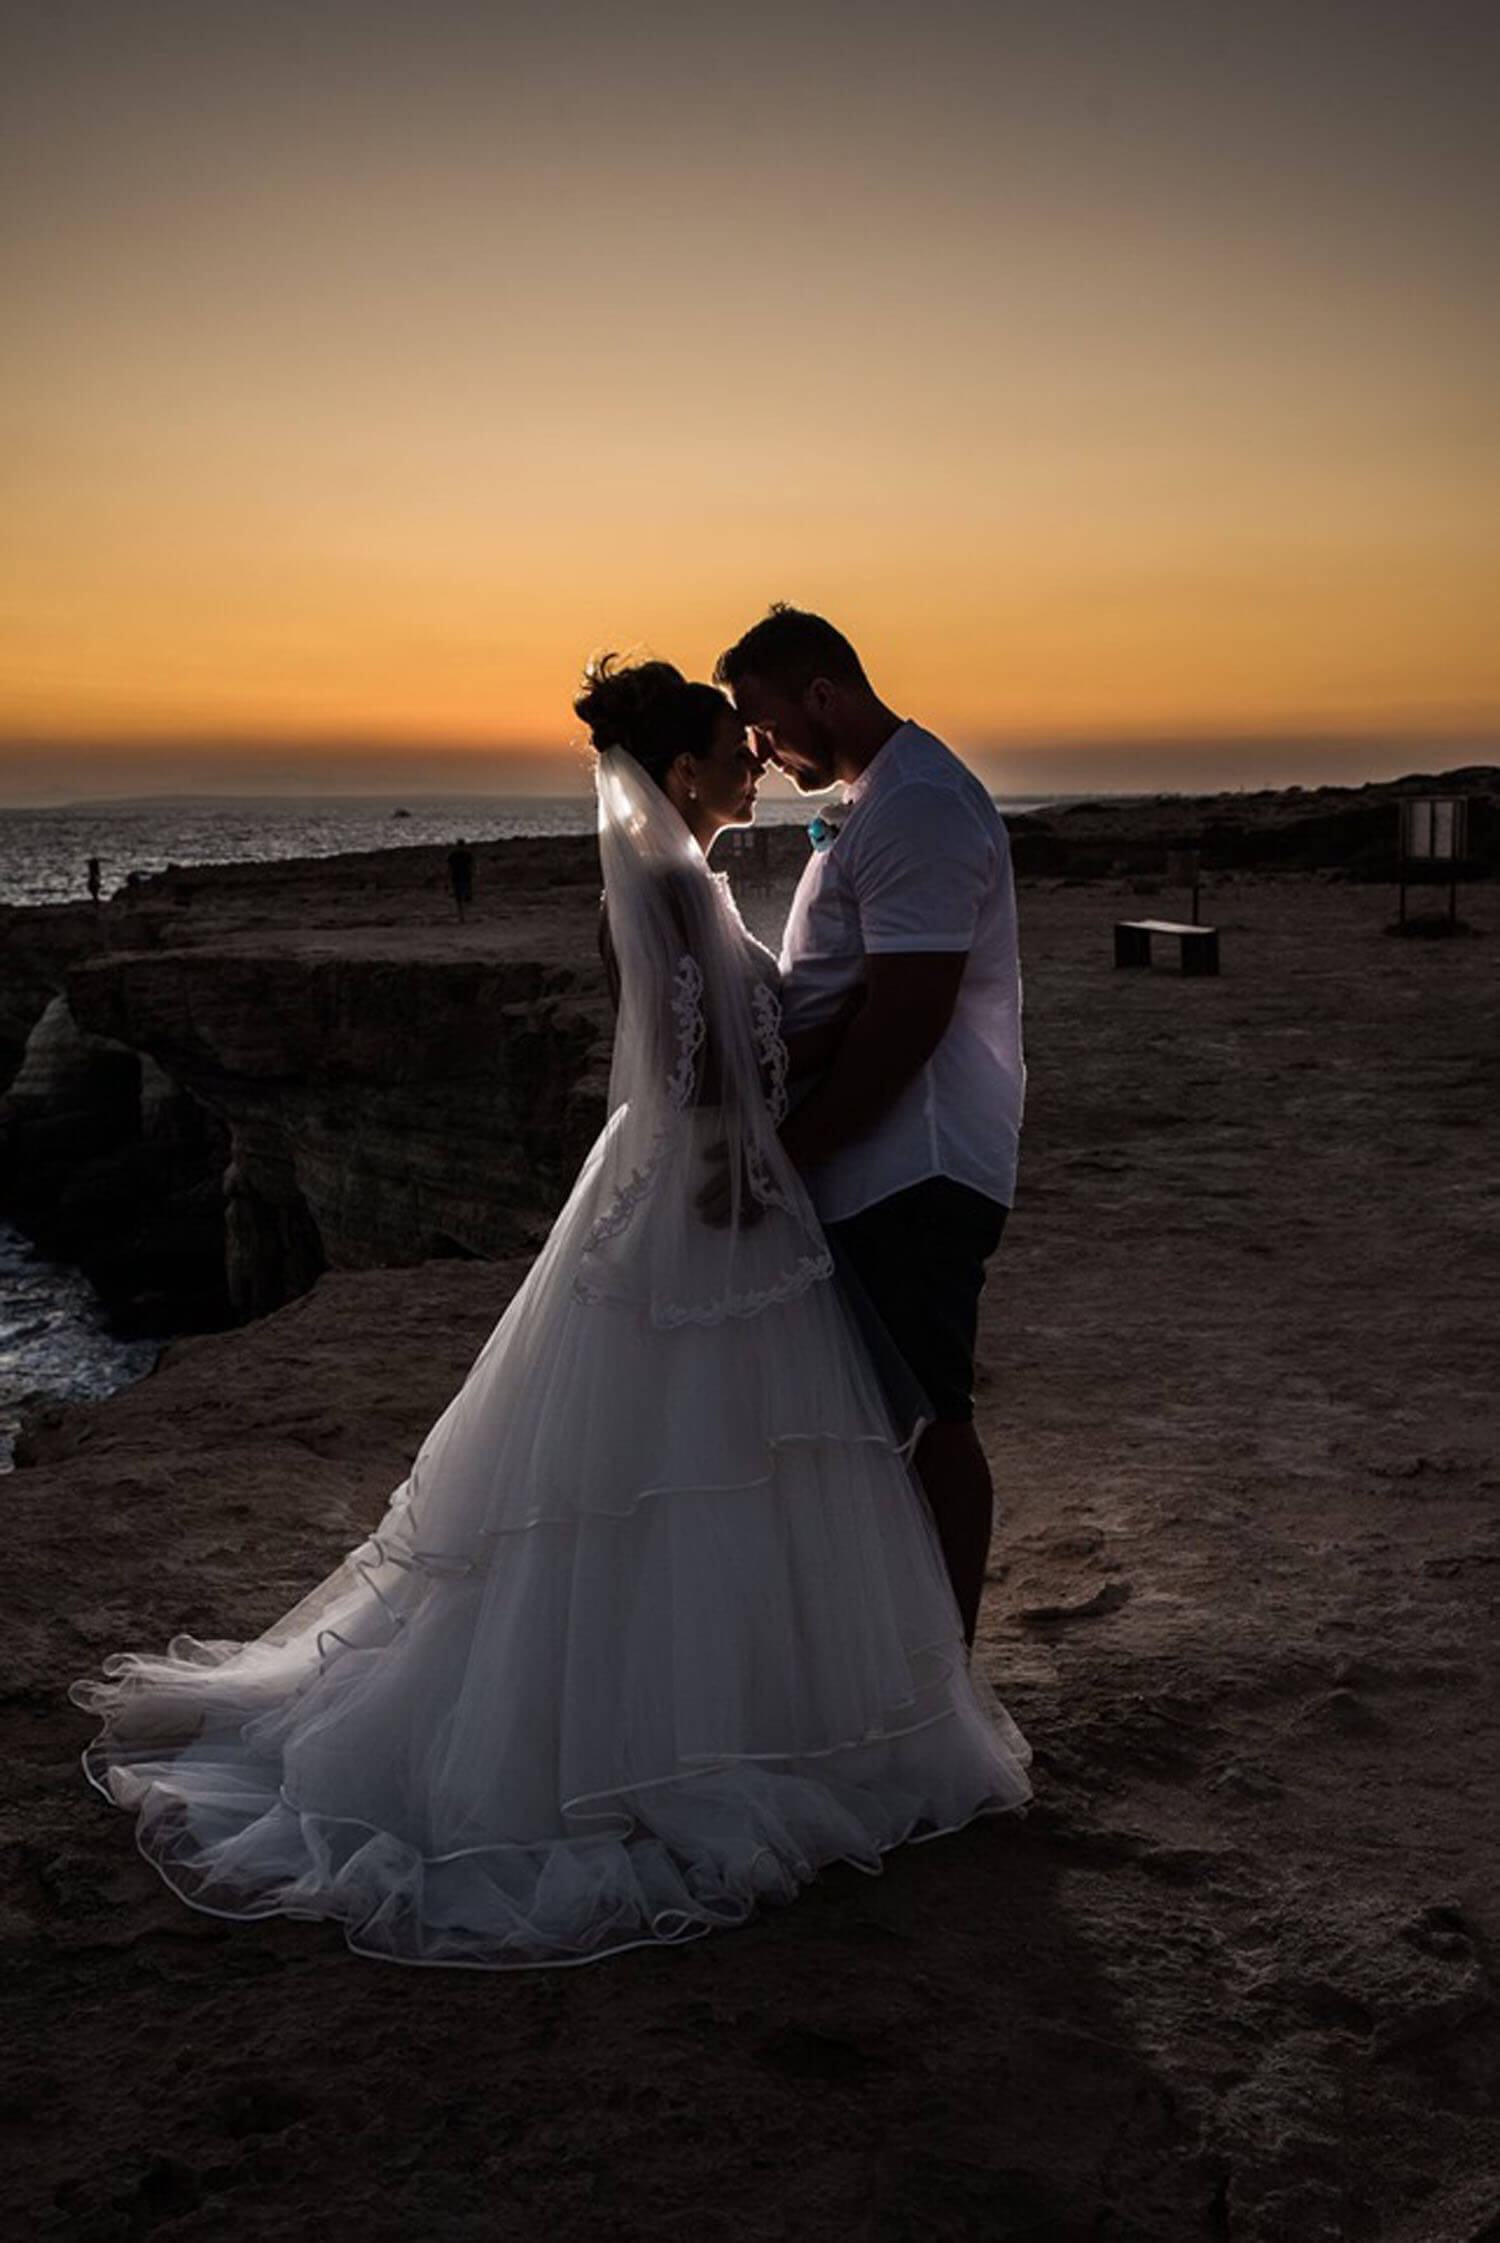 Bride and Groom standing near the sea at sunset.